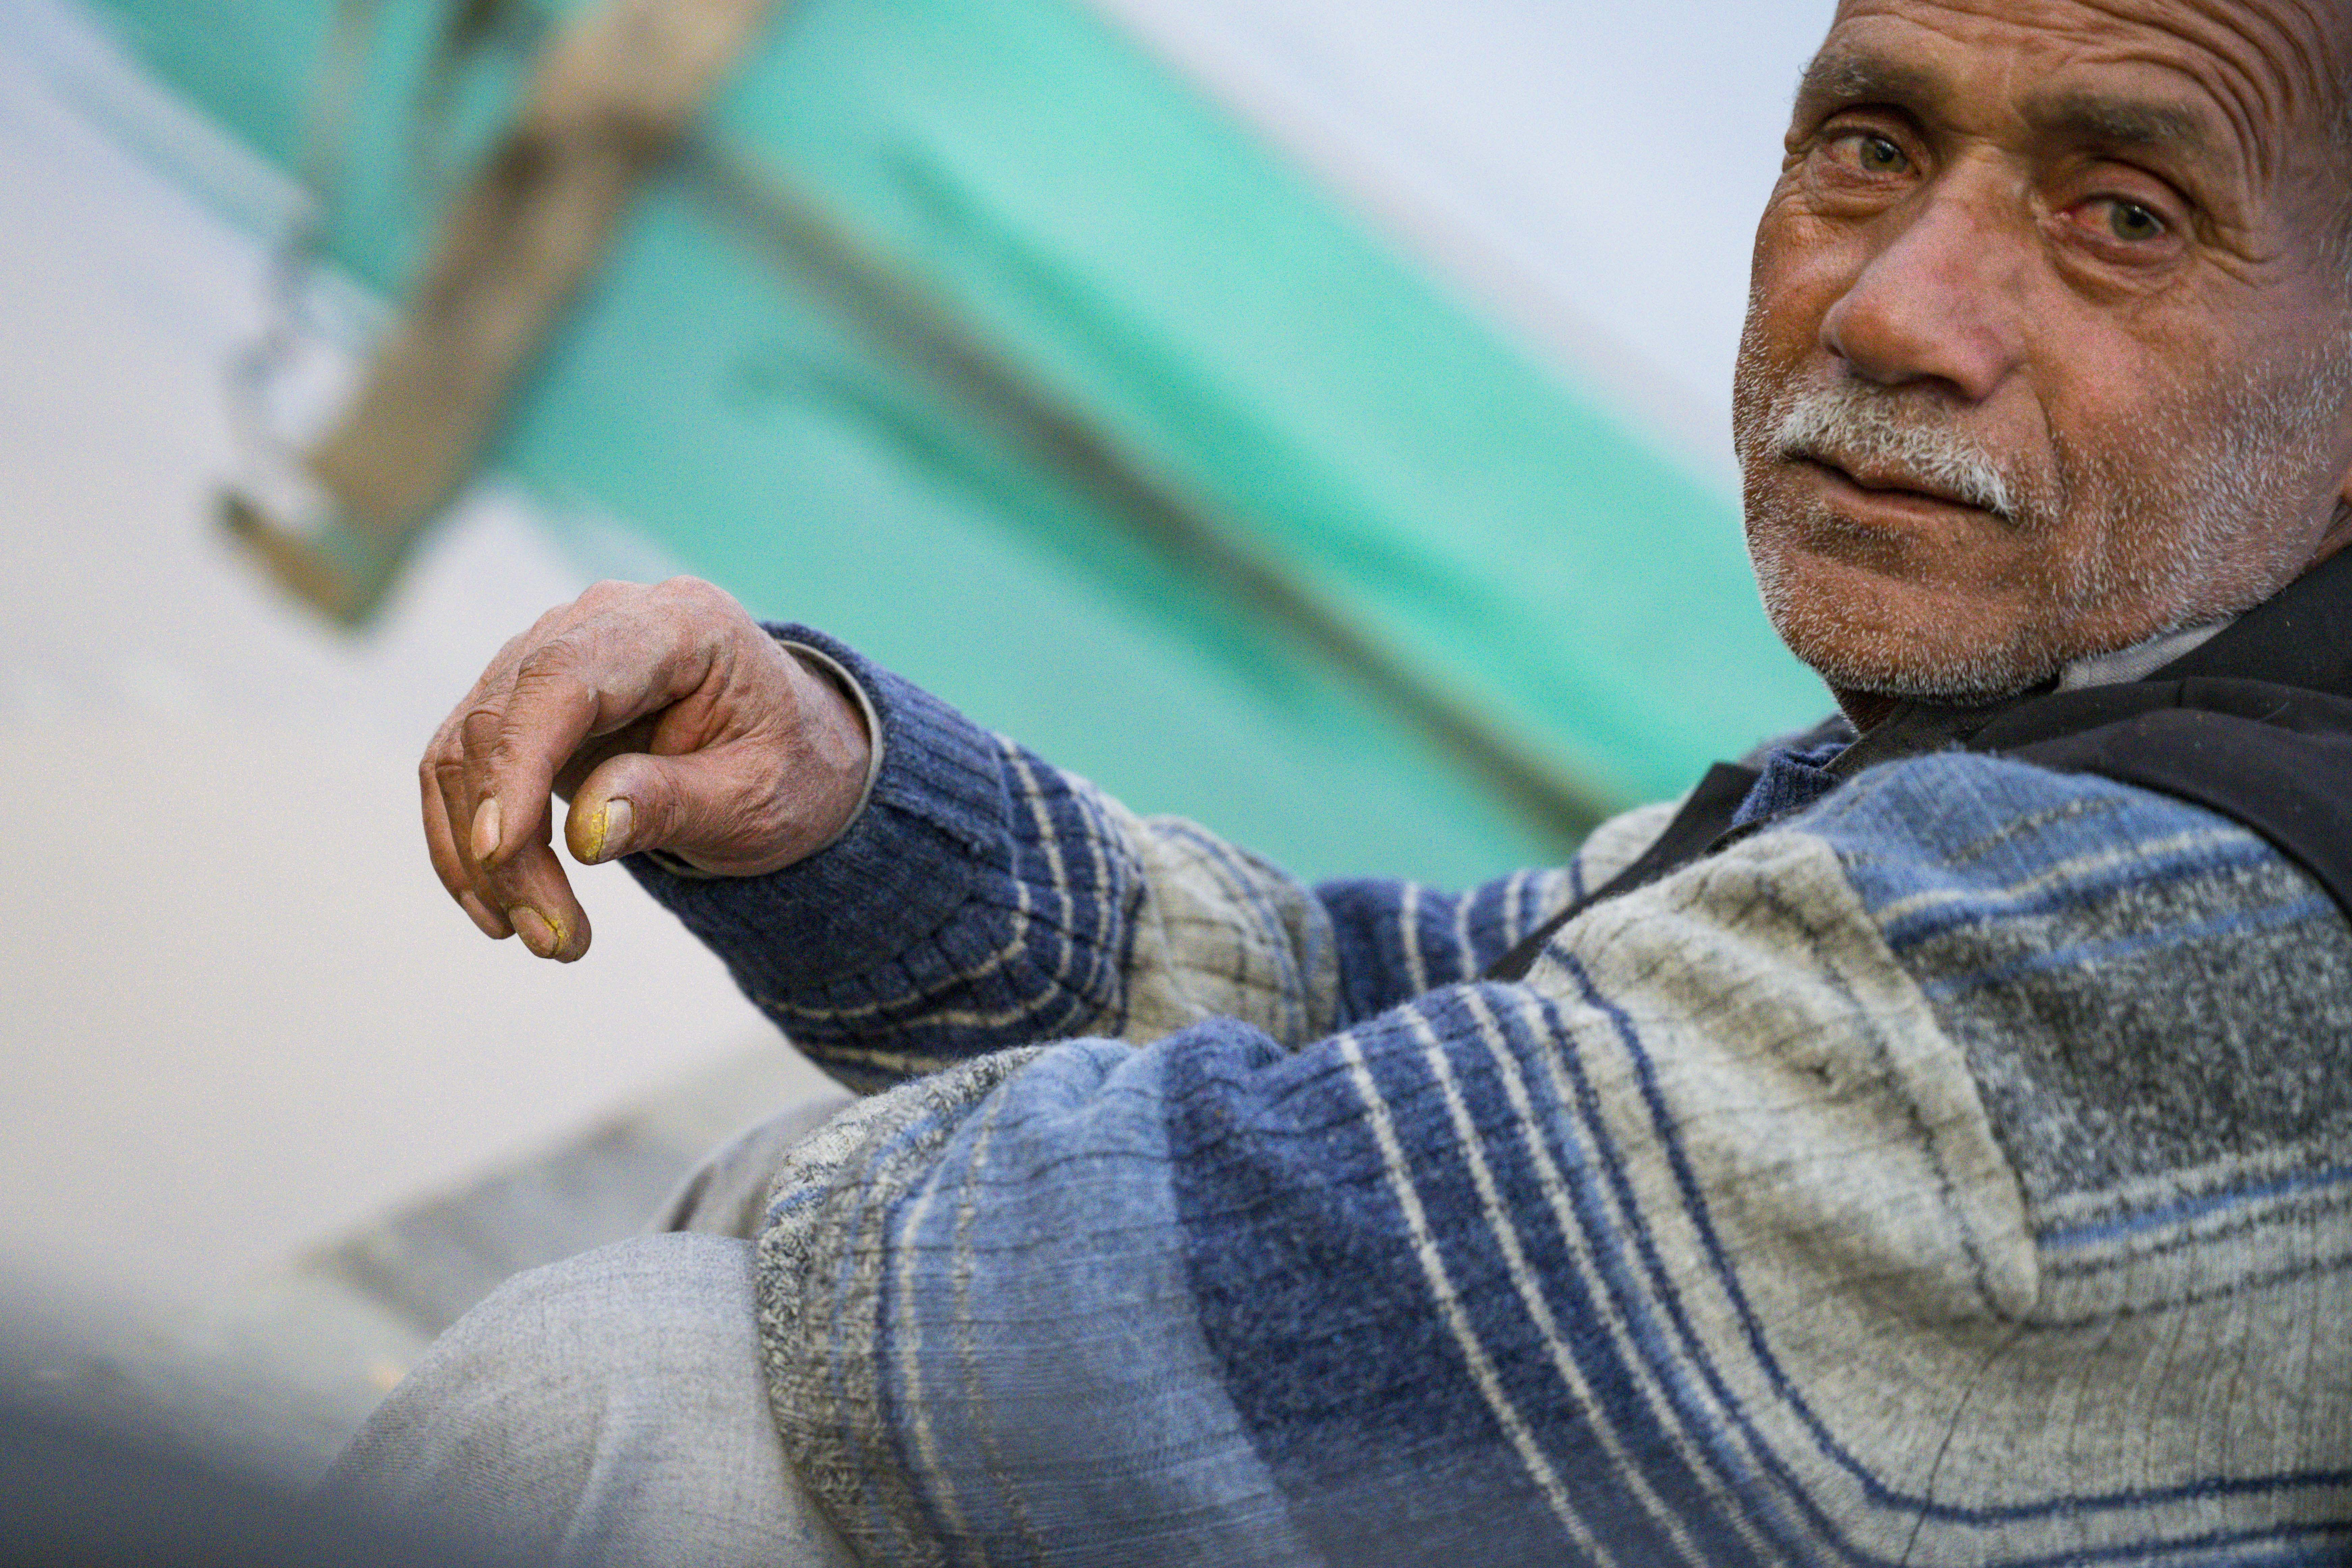 Portrait of a Fisherman, Srinagar